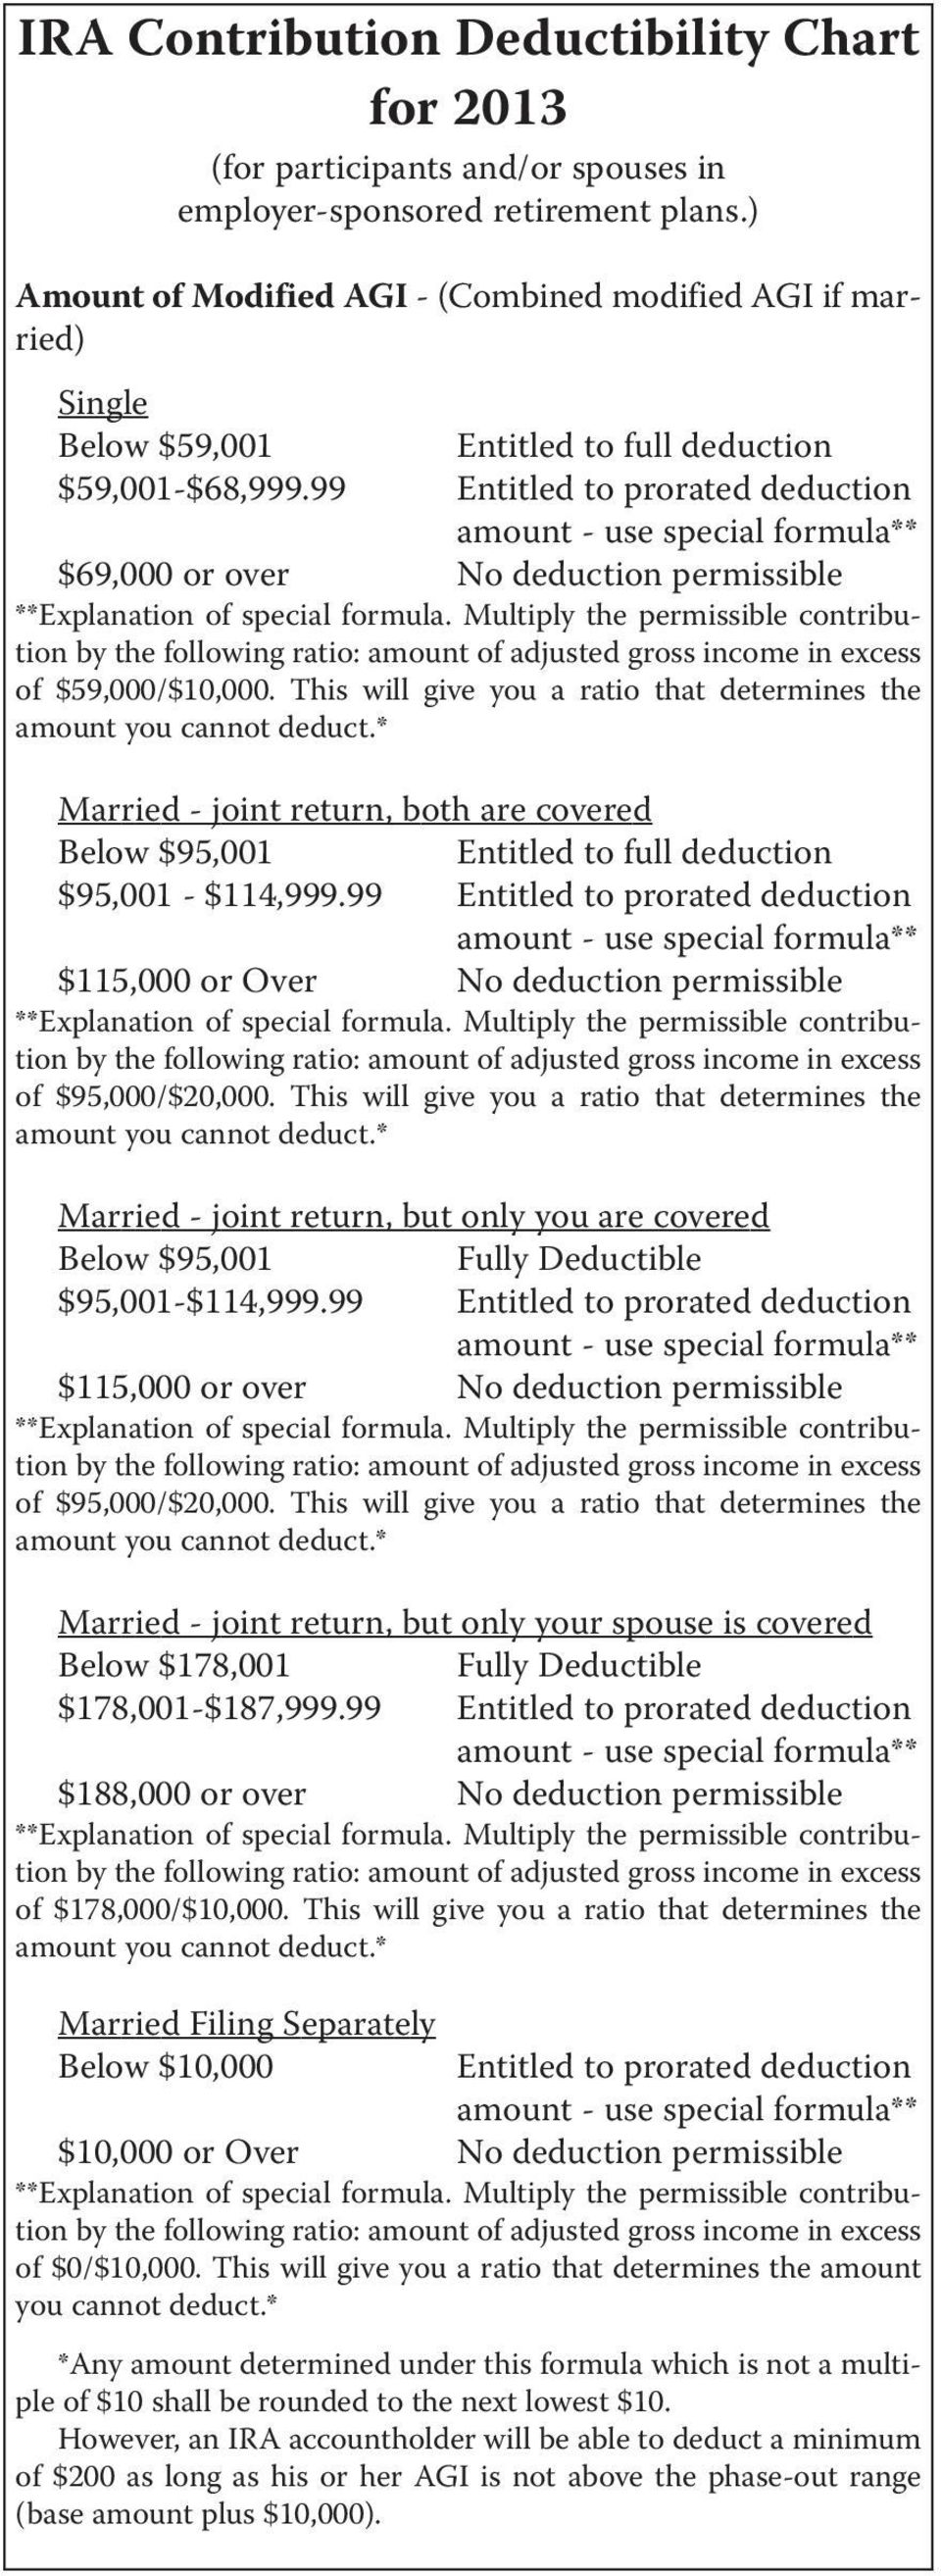 99 Entitled to prorated deduction $69,000 or over No deduction permissible of $59,000/$10,000.